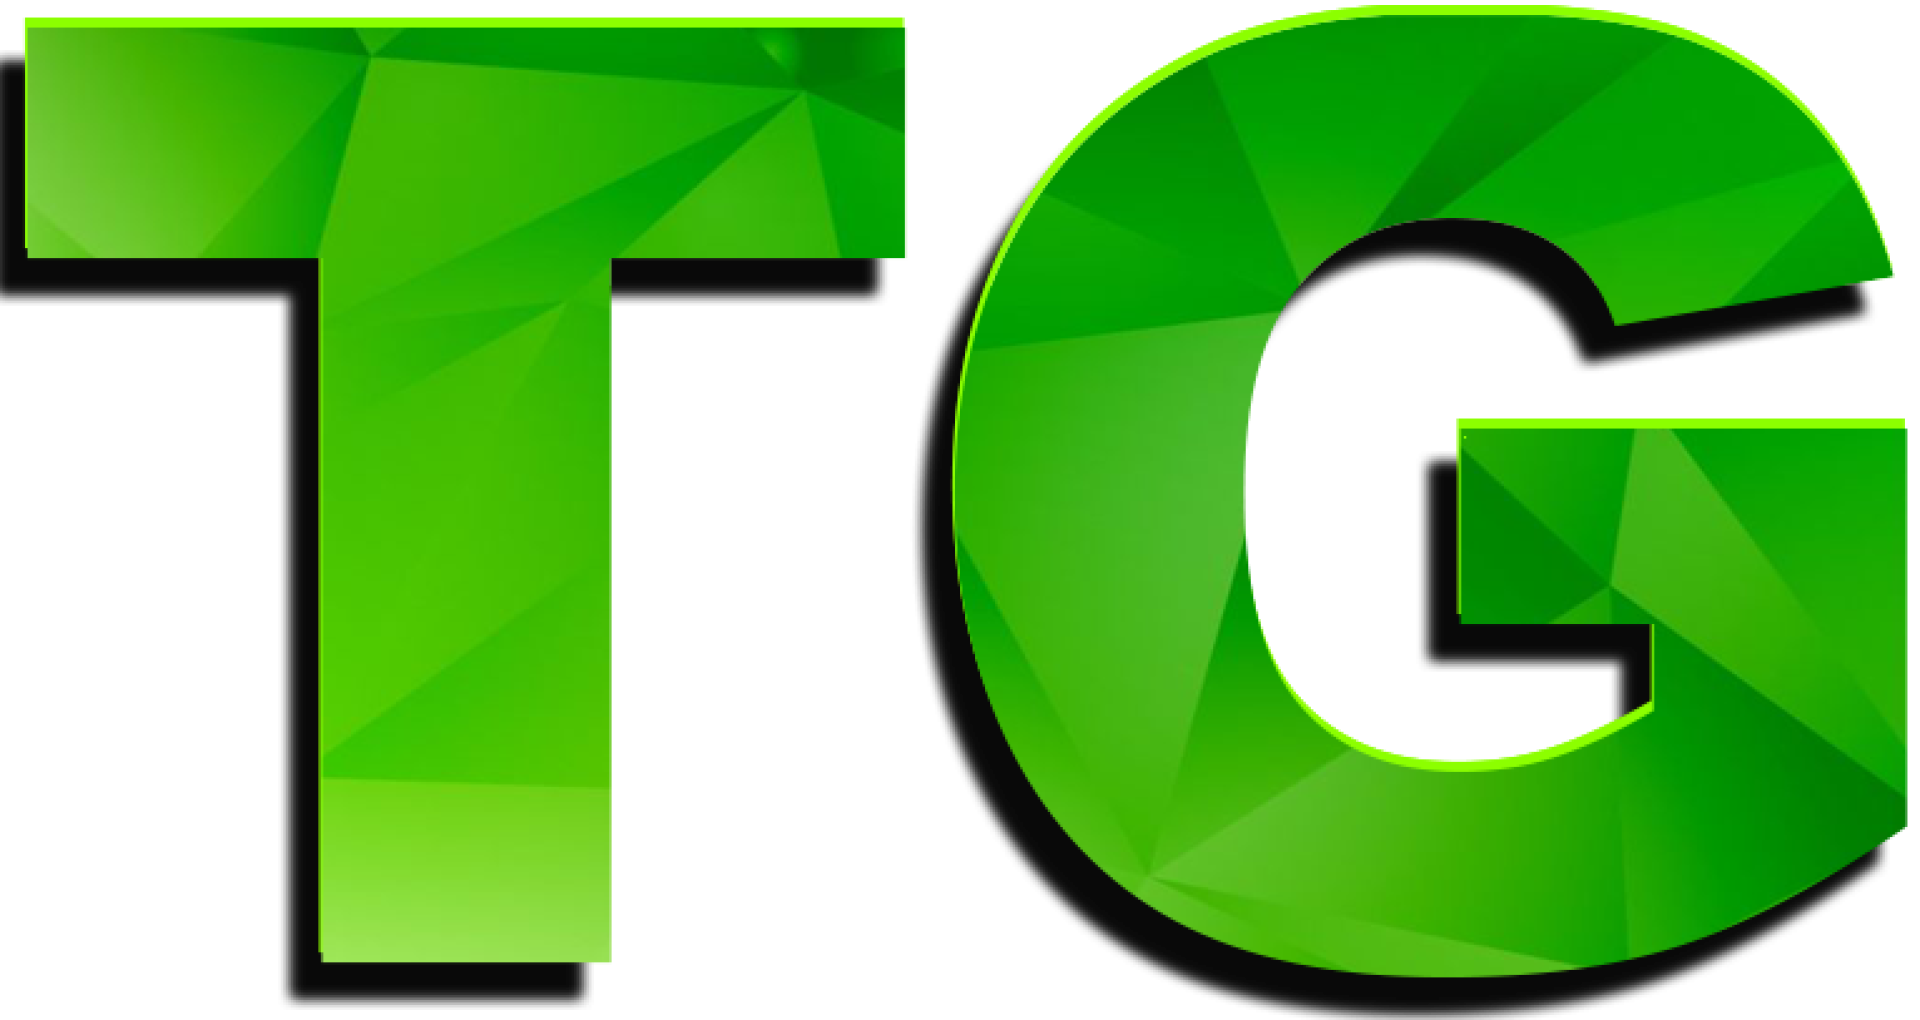 Toolgreen